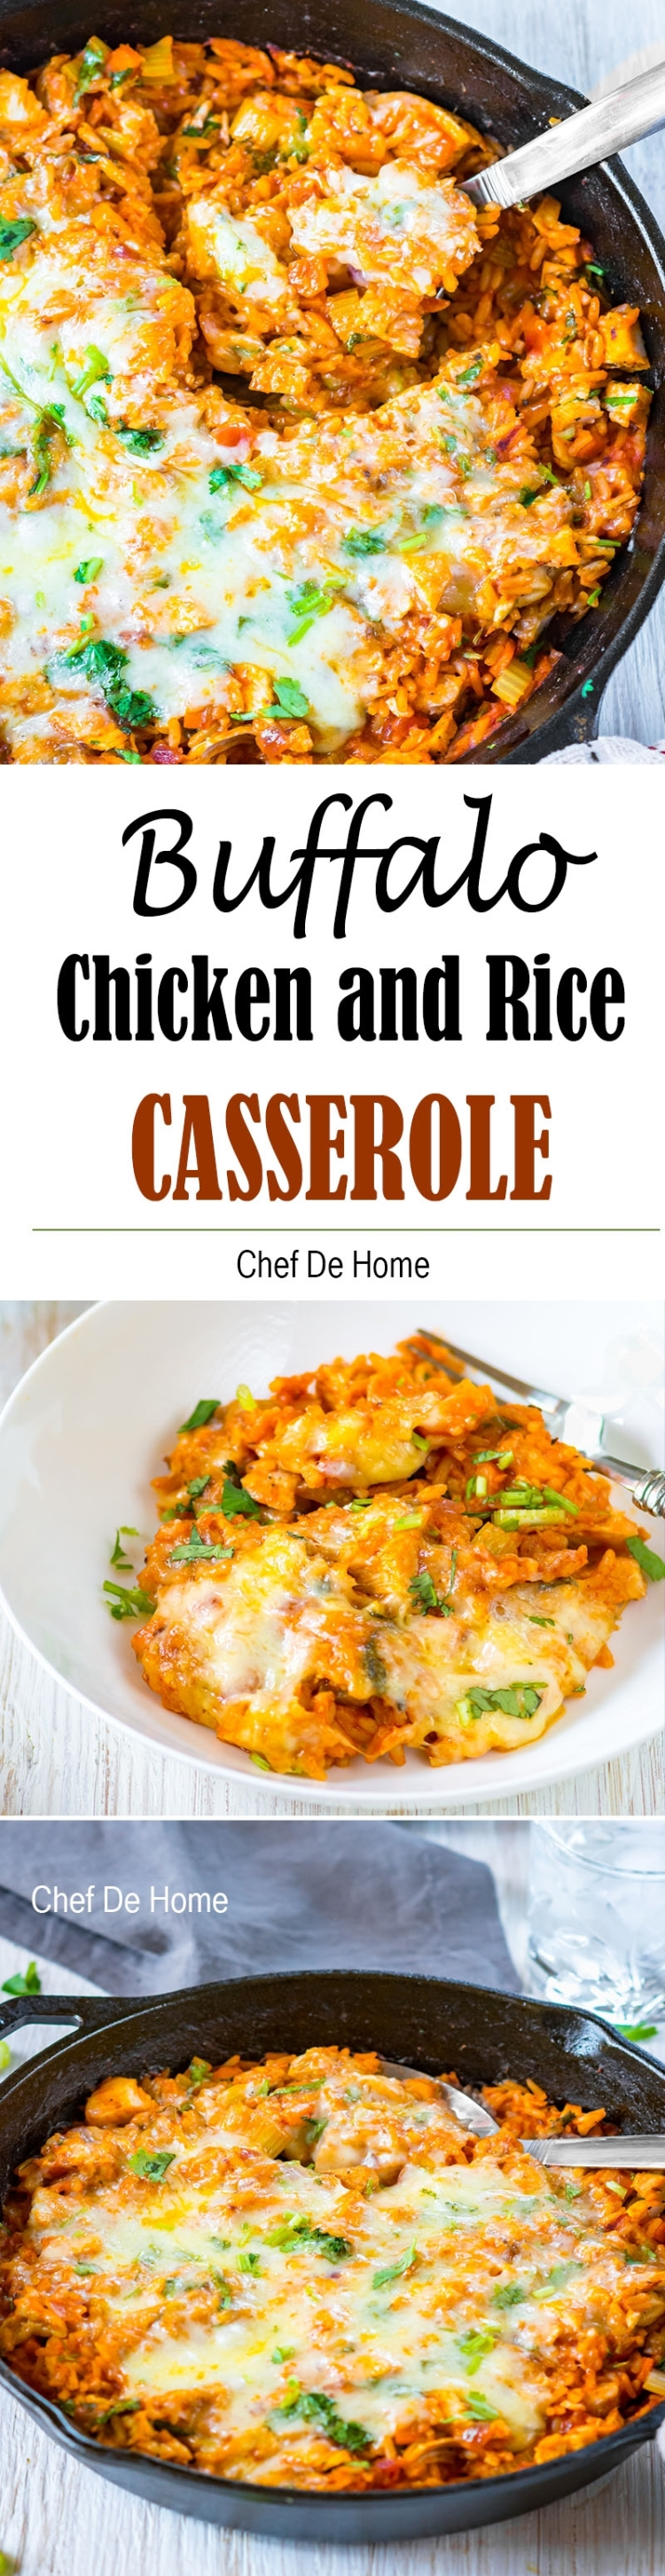 Cheesy Buffalo Chicken and Rice Casserole ready in 25 minutes and loaded with game day flavors | chefdehome.com